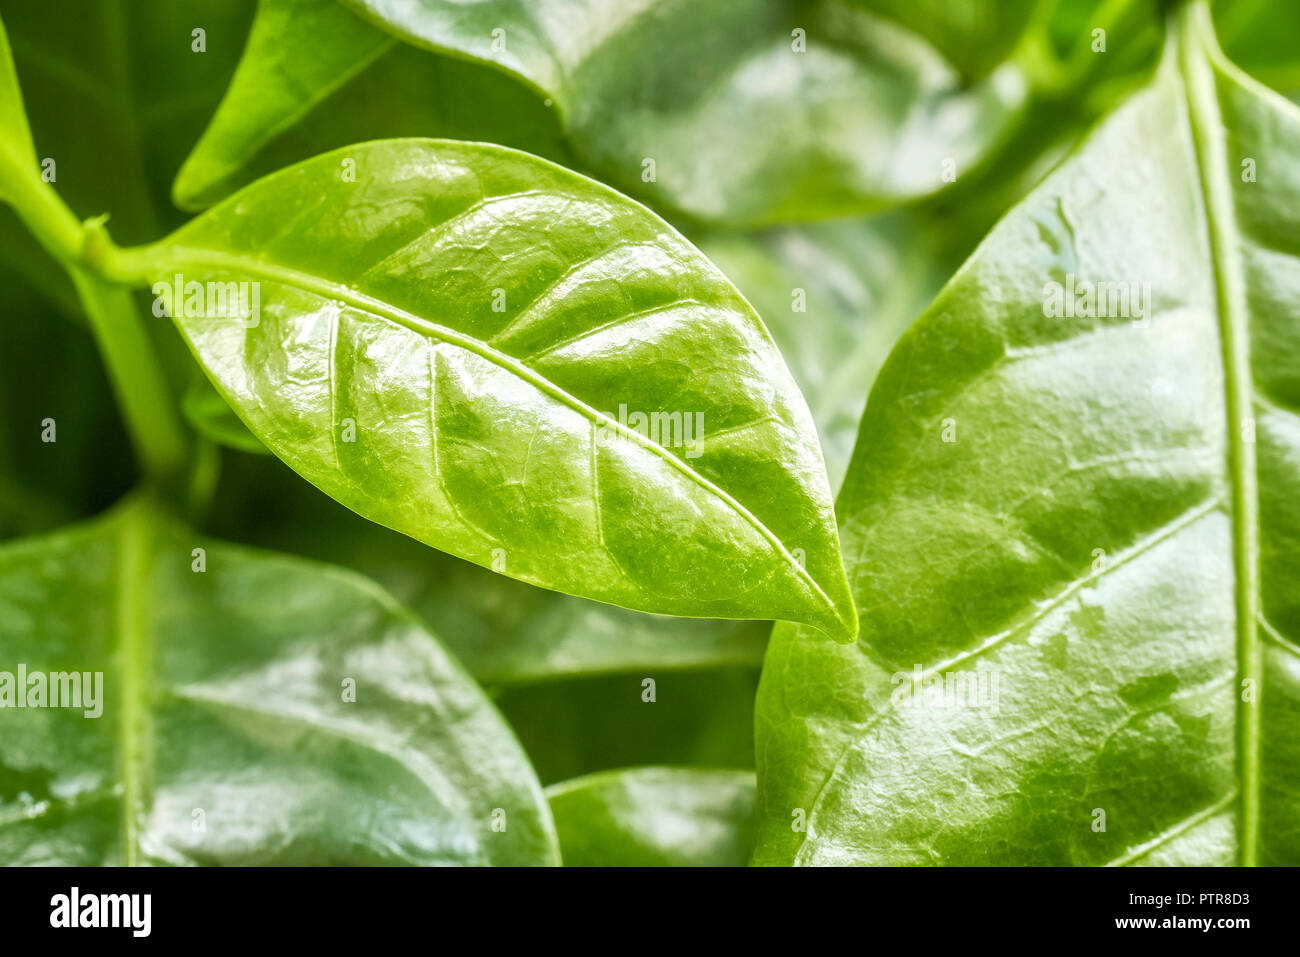 Close up picture of arabica coffee leaves, selective focus. - Stock Image